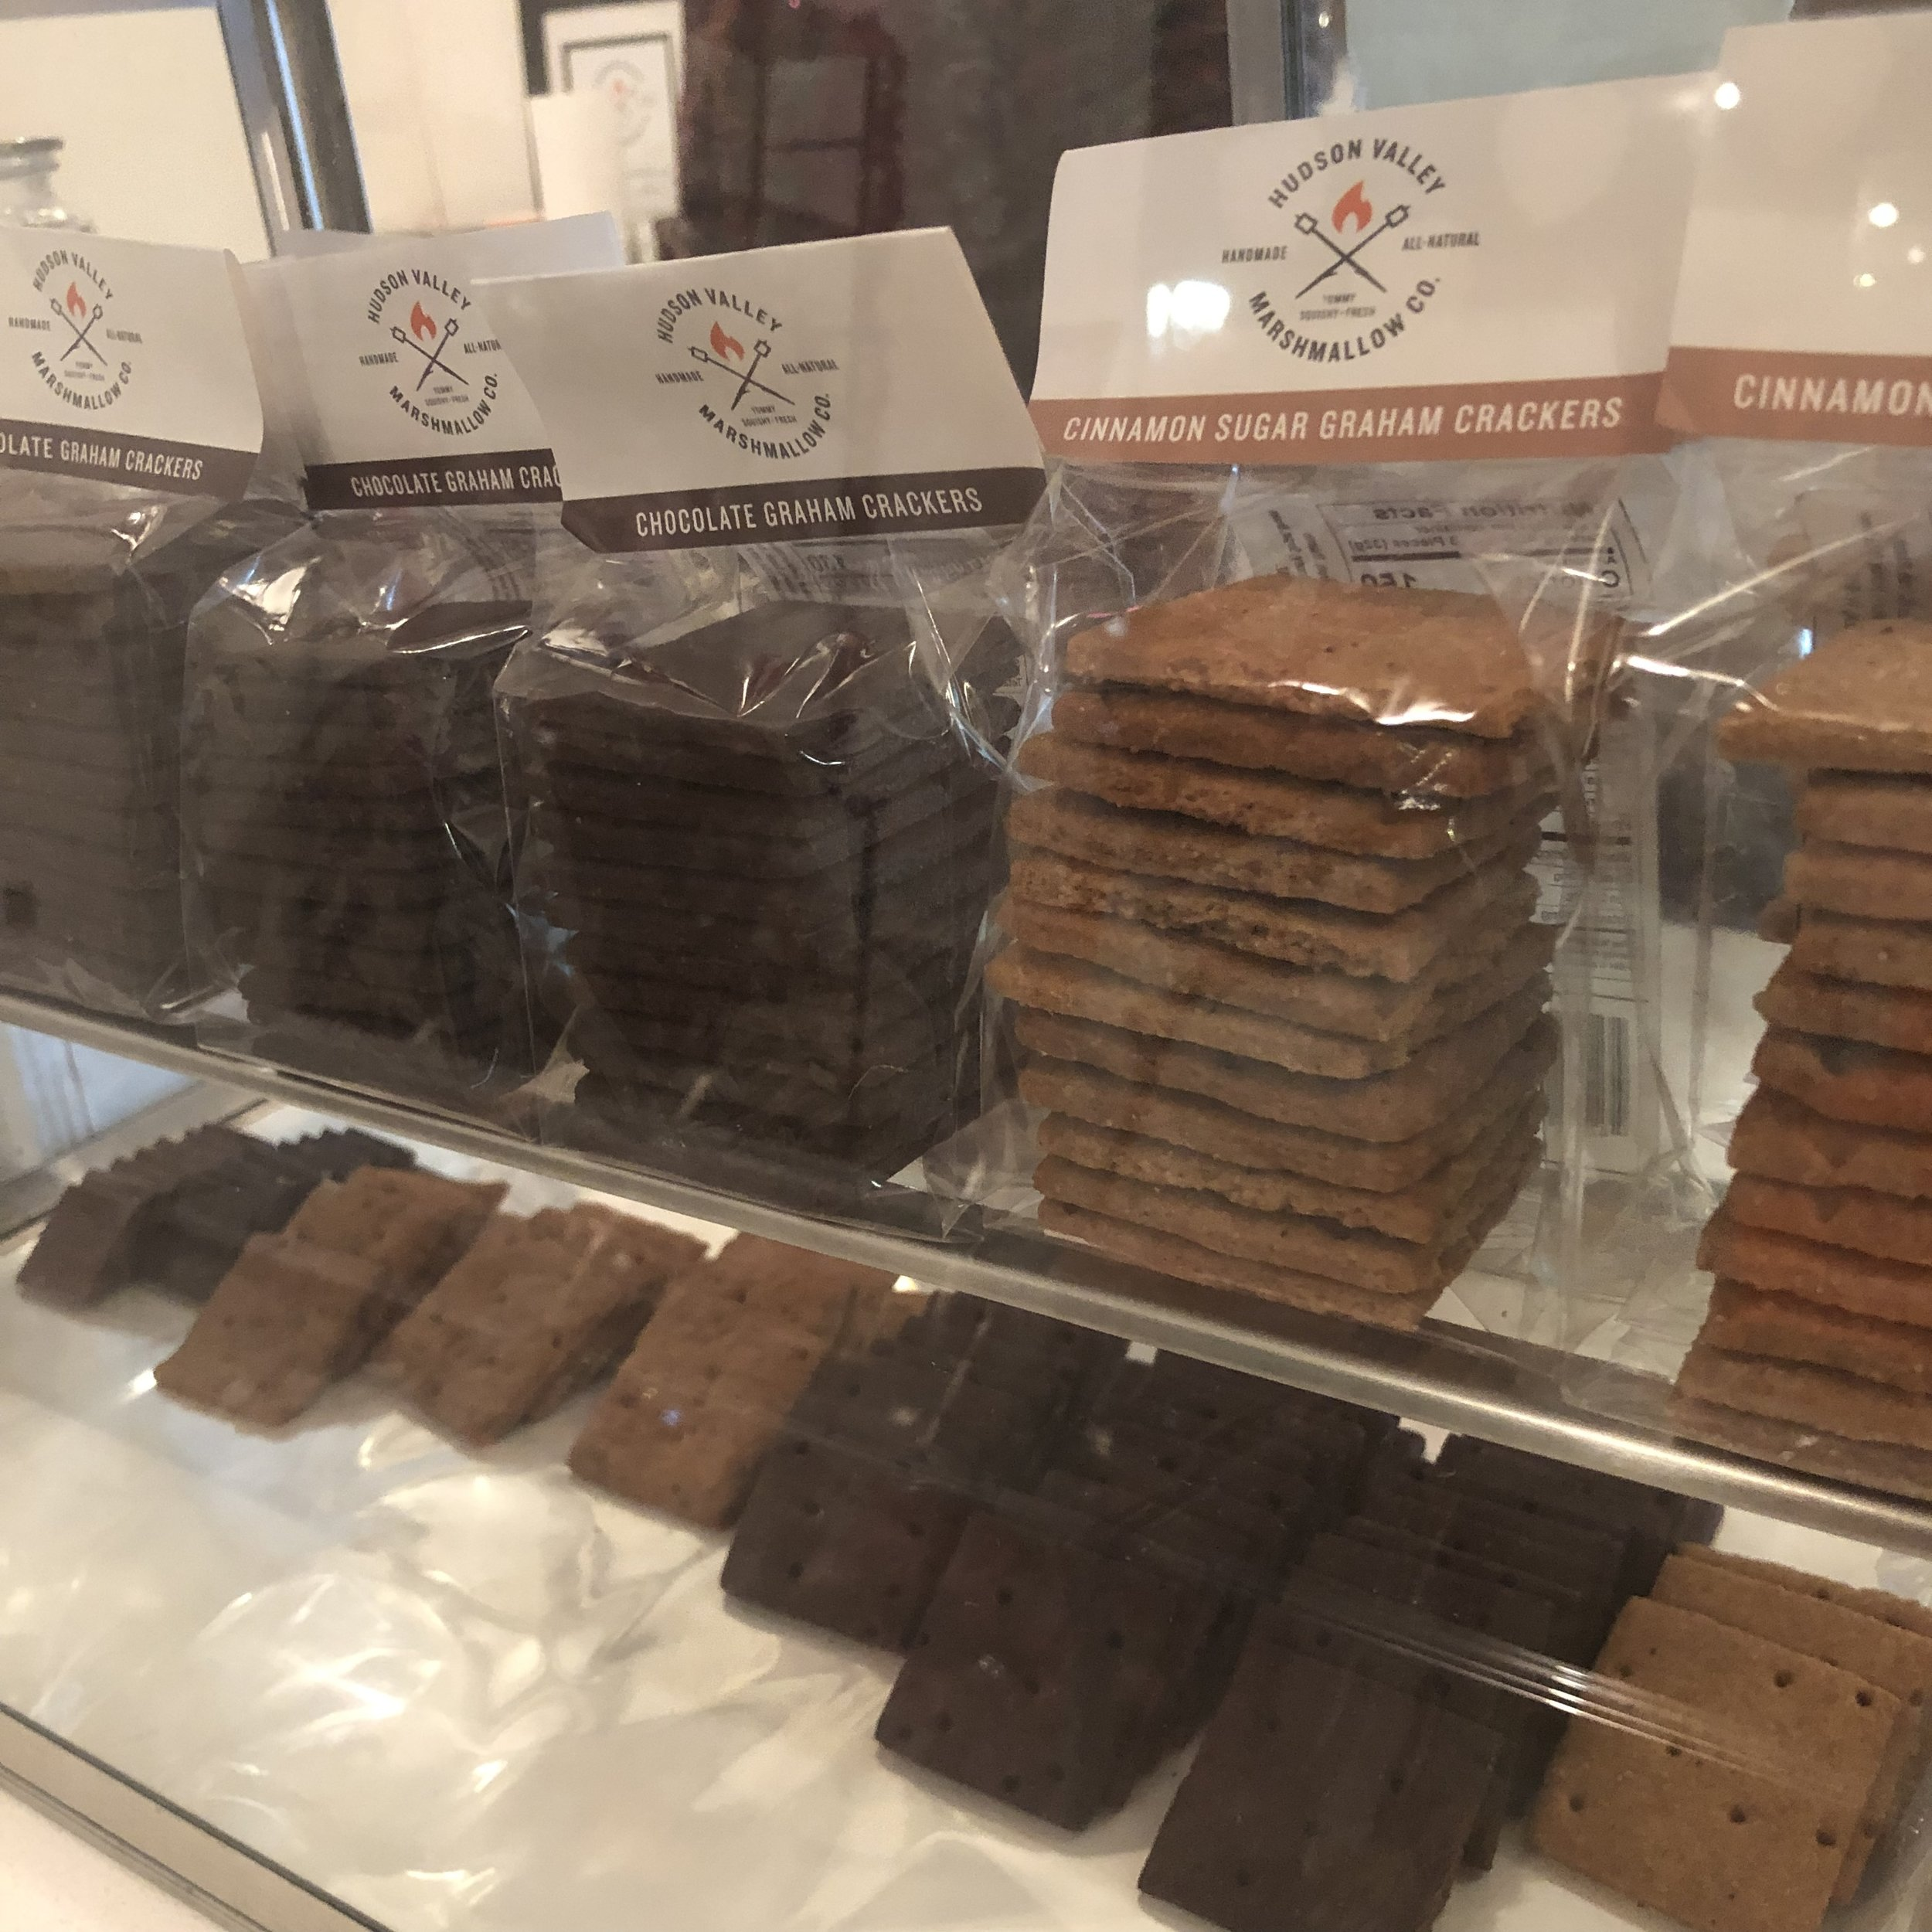 The s'more cookie crackers at Hudson Valley Marshmallow Co. These are baked right here in Beacon.  Photo Credit: Katie Hellmuth Martin